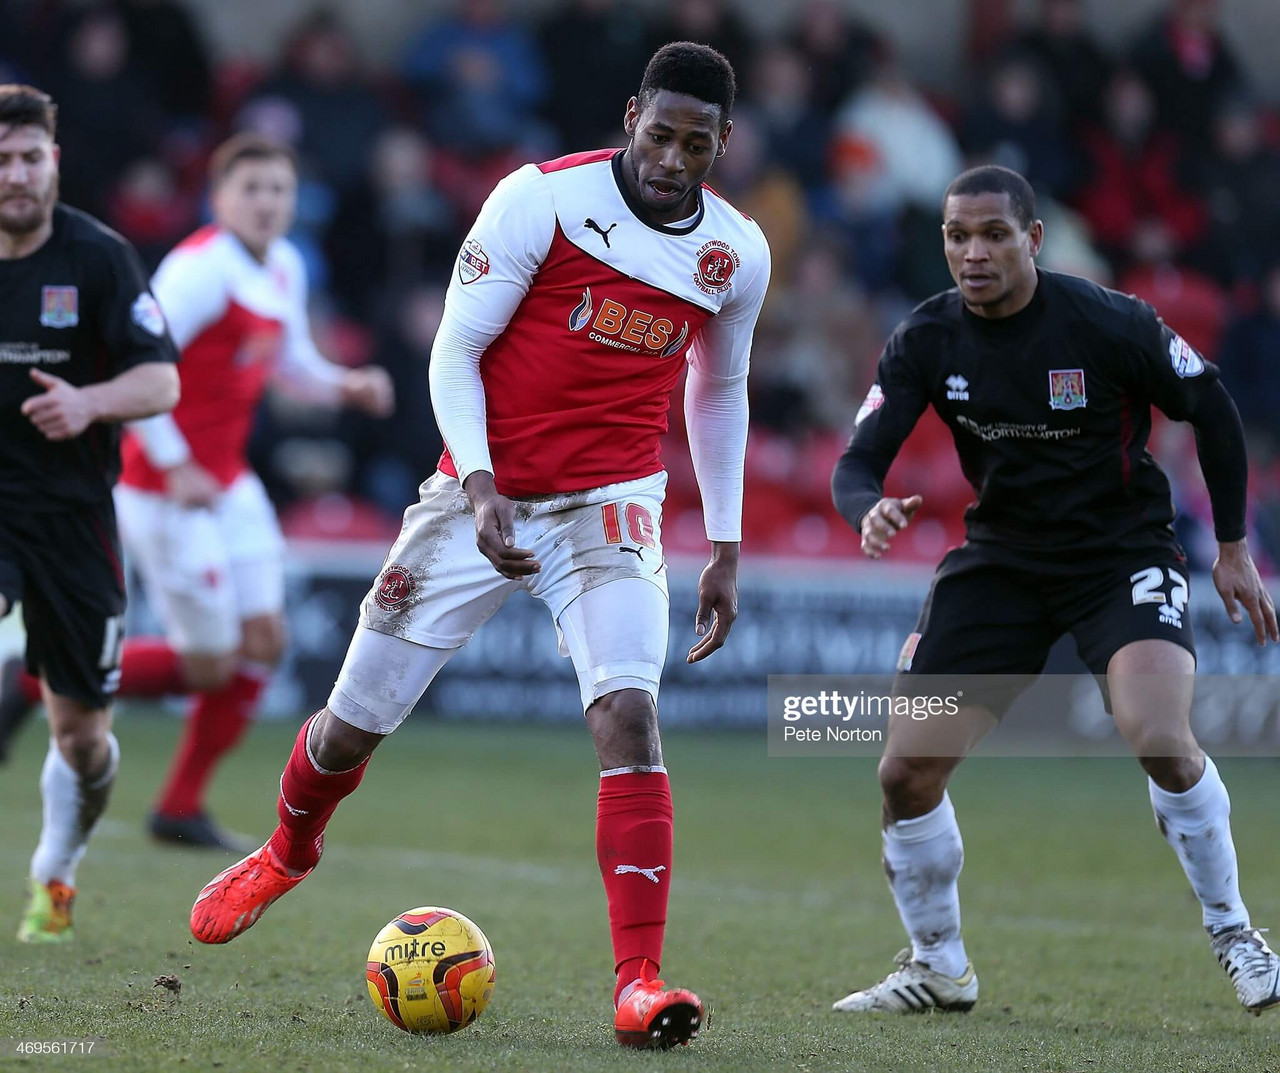 FLEETWOOD, ENGLAND - FEBRUARY 15: Jamille Matt of Fleetwood Town looks to play the ball watched by Mathias Kouo-Doumbe of Northampton Town during the Sky Bet League Two match between Fleetwood Town and Northampton Town at Highbury Stadium on February 15, 2014 in Fleetwood, England. (Photo by Pete Norton/Getty Images)